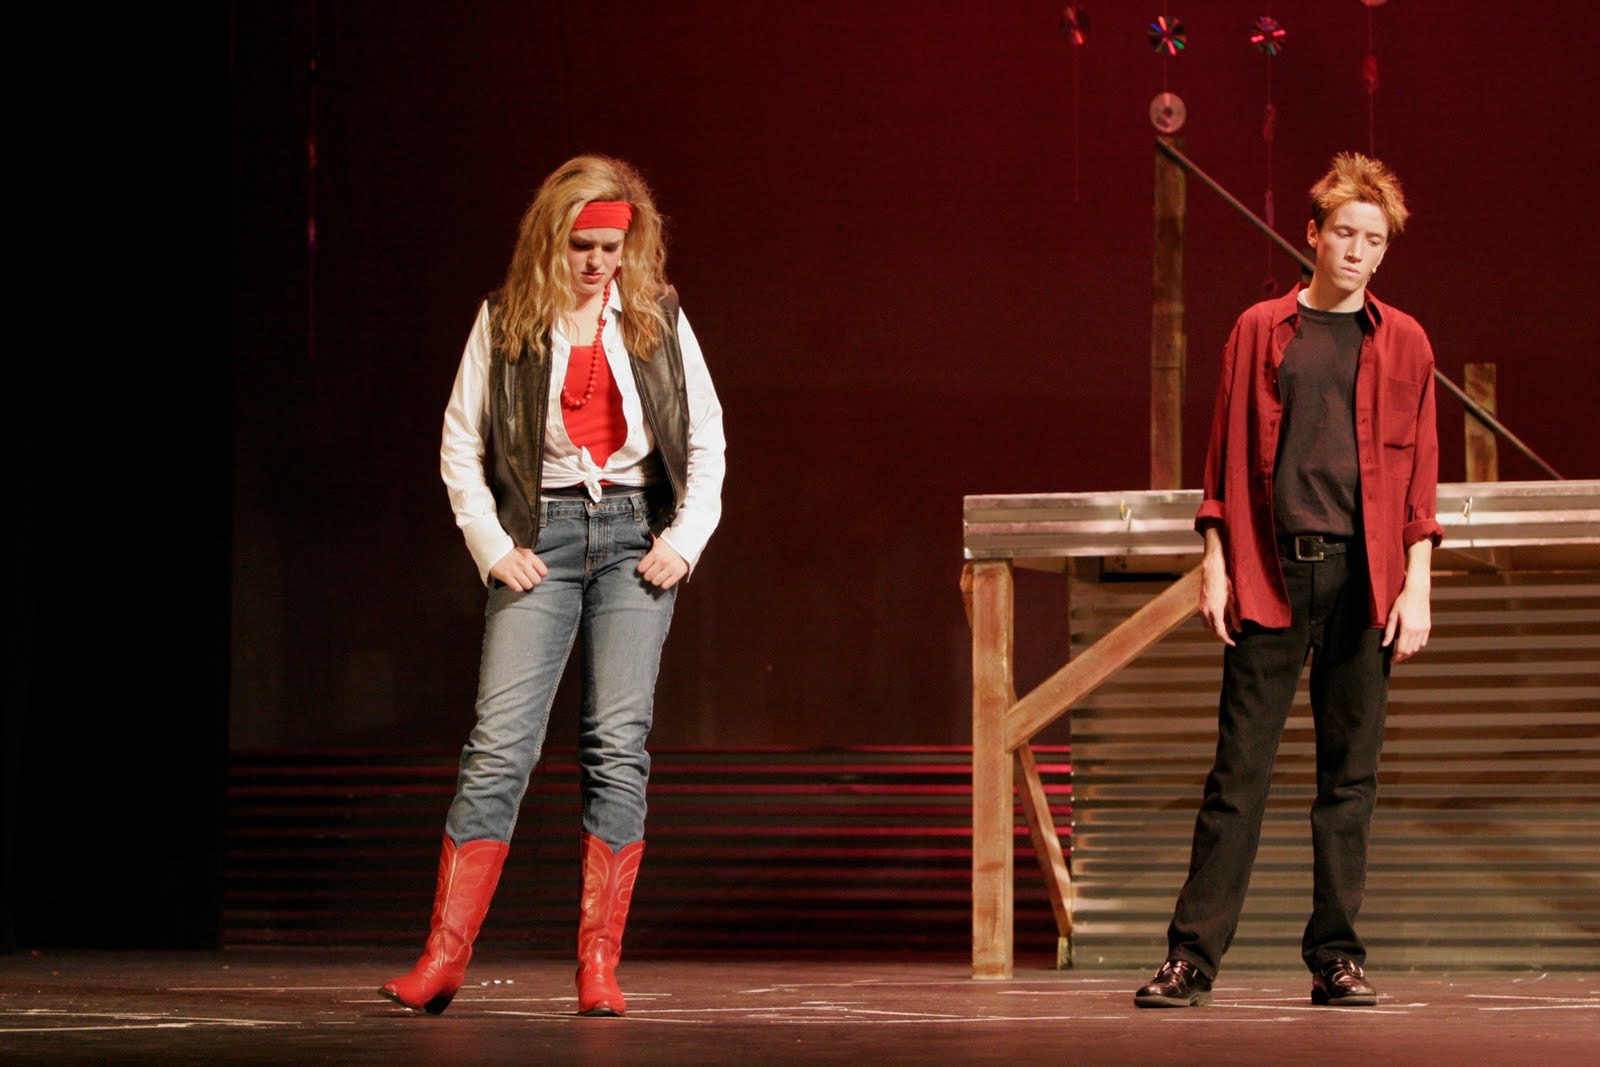 Highland Theatre Footloose Costumes